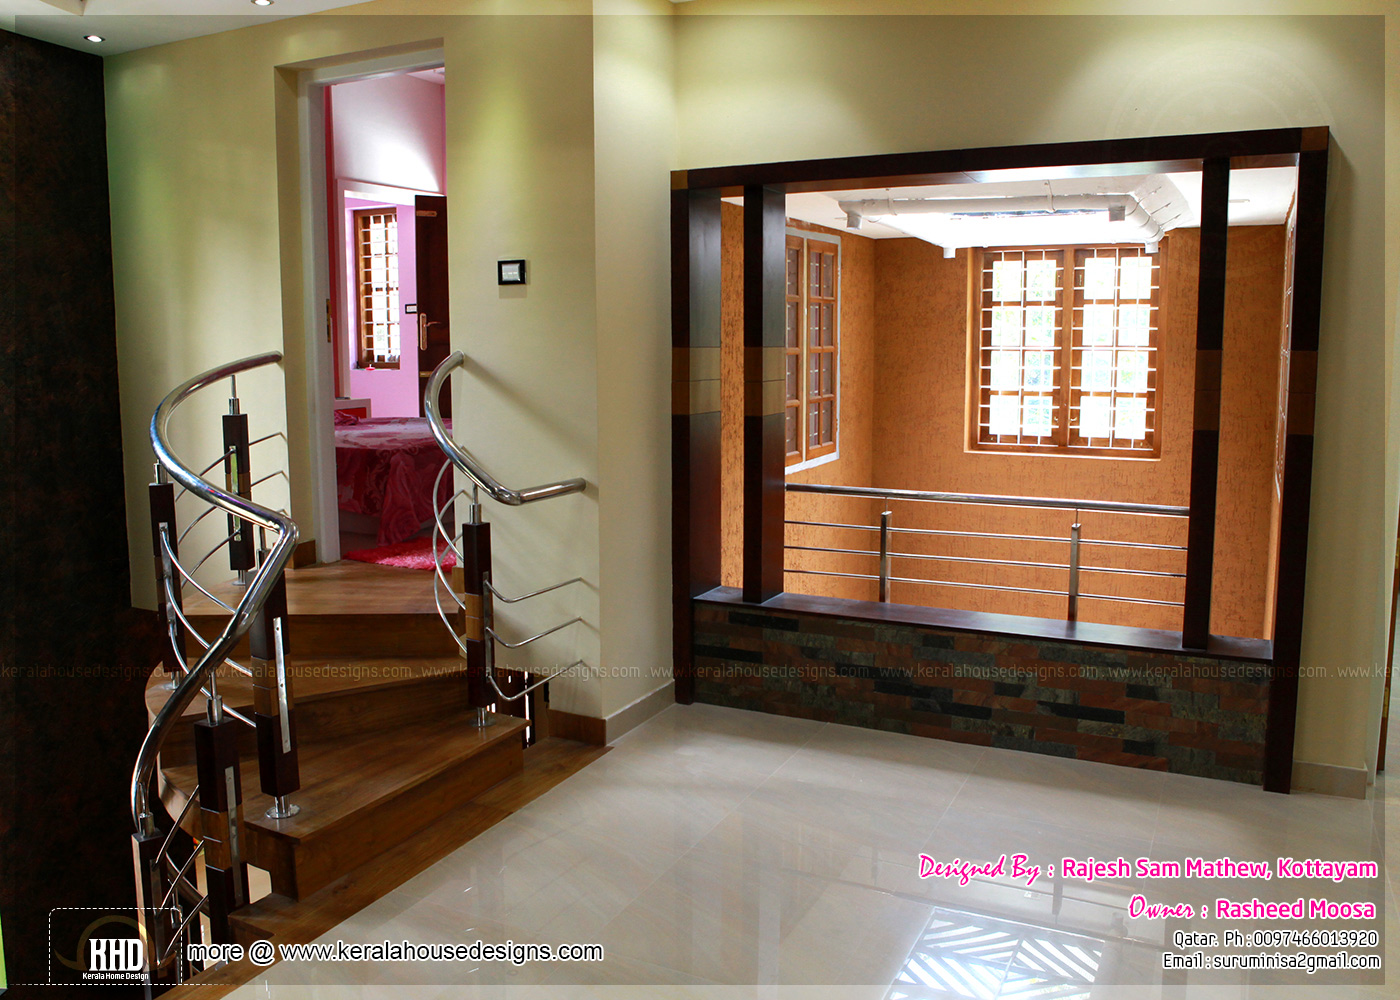 Kerala interior design with photos kerala home design for Interior house plans with photos